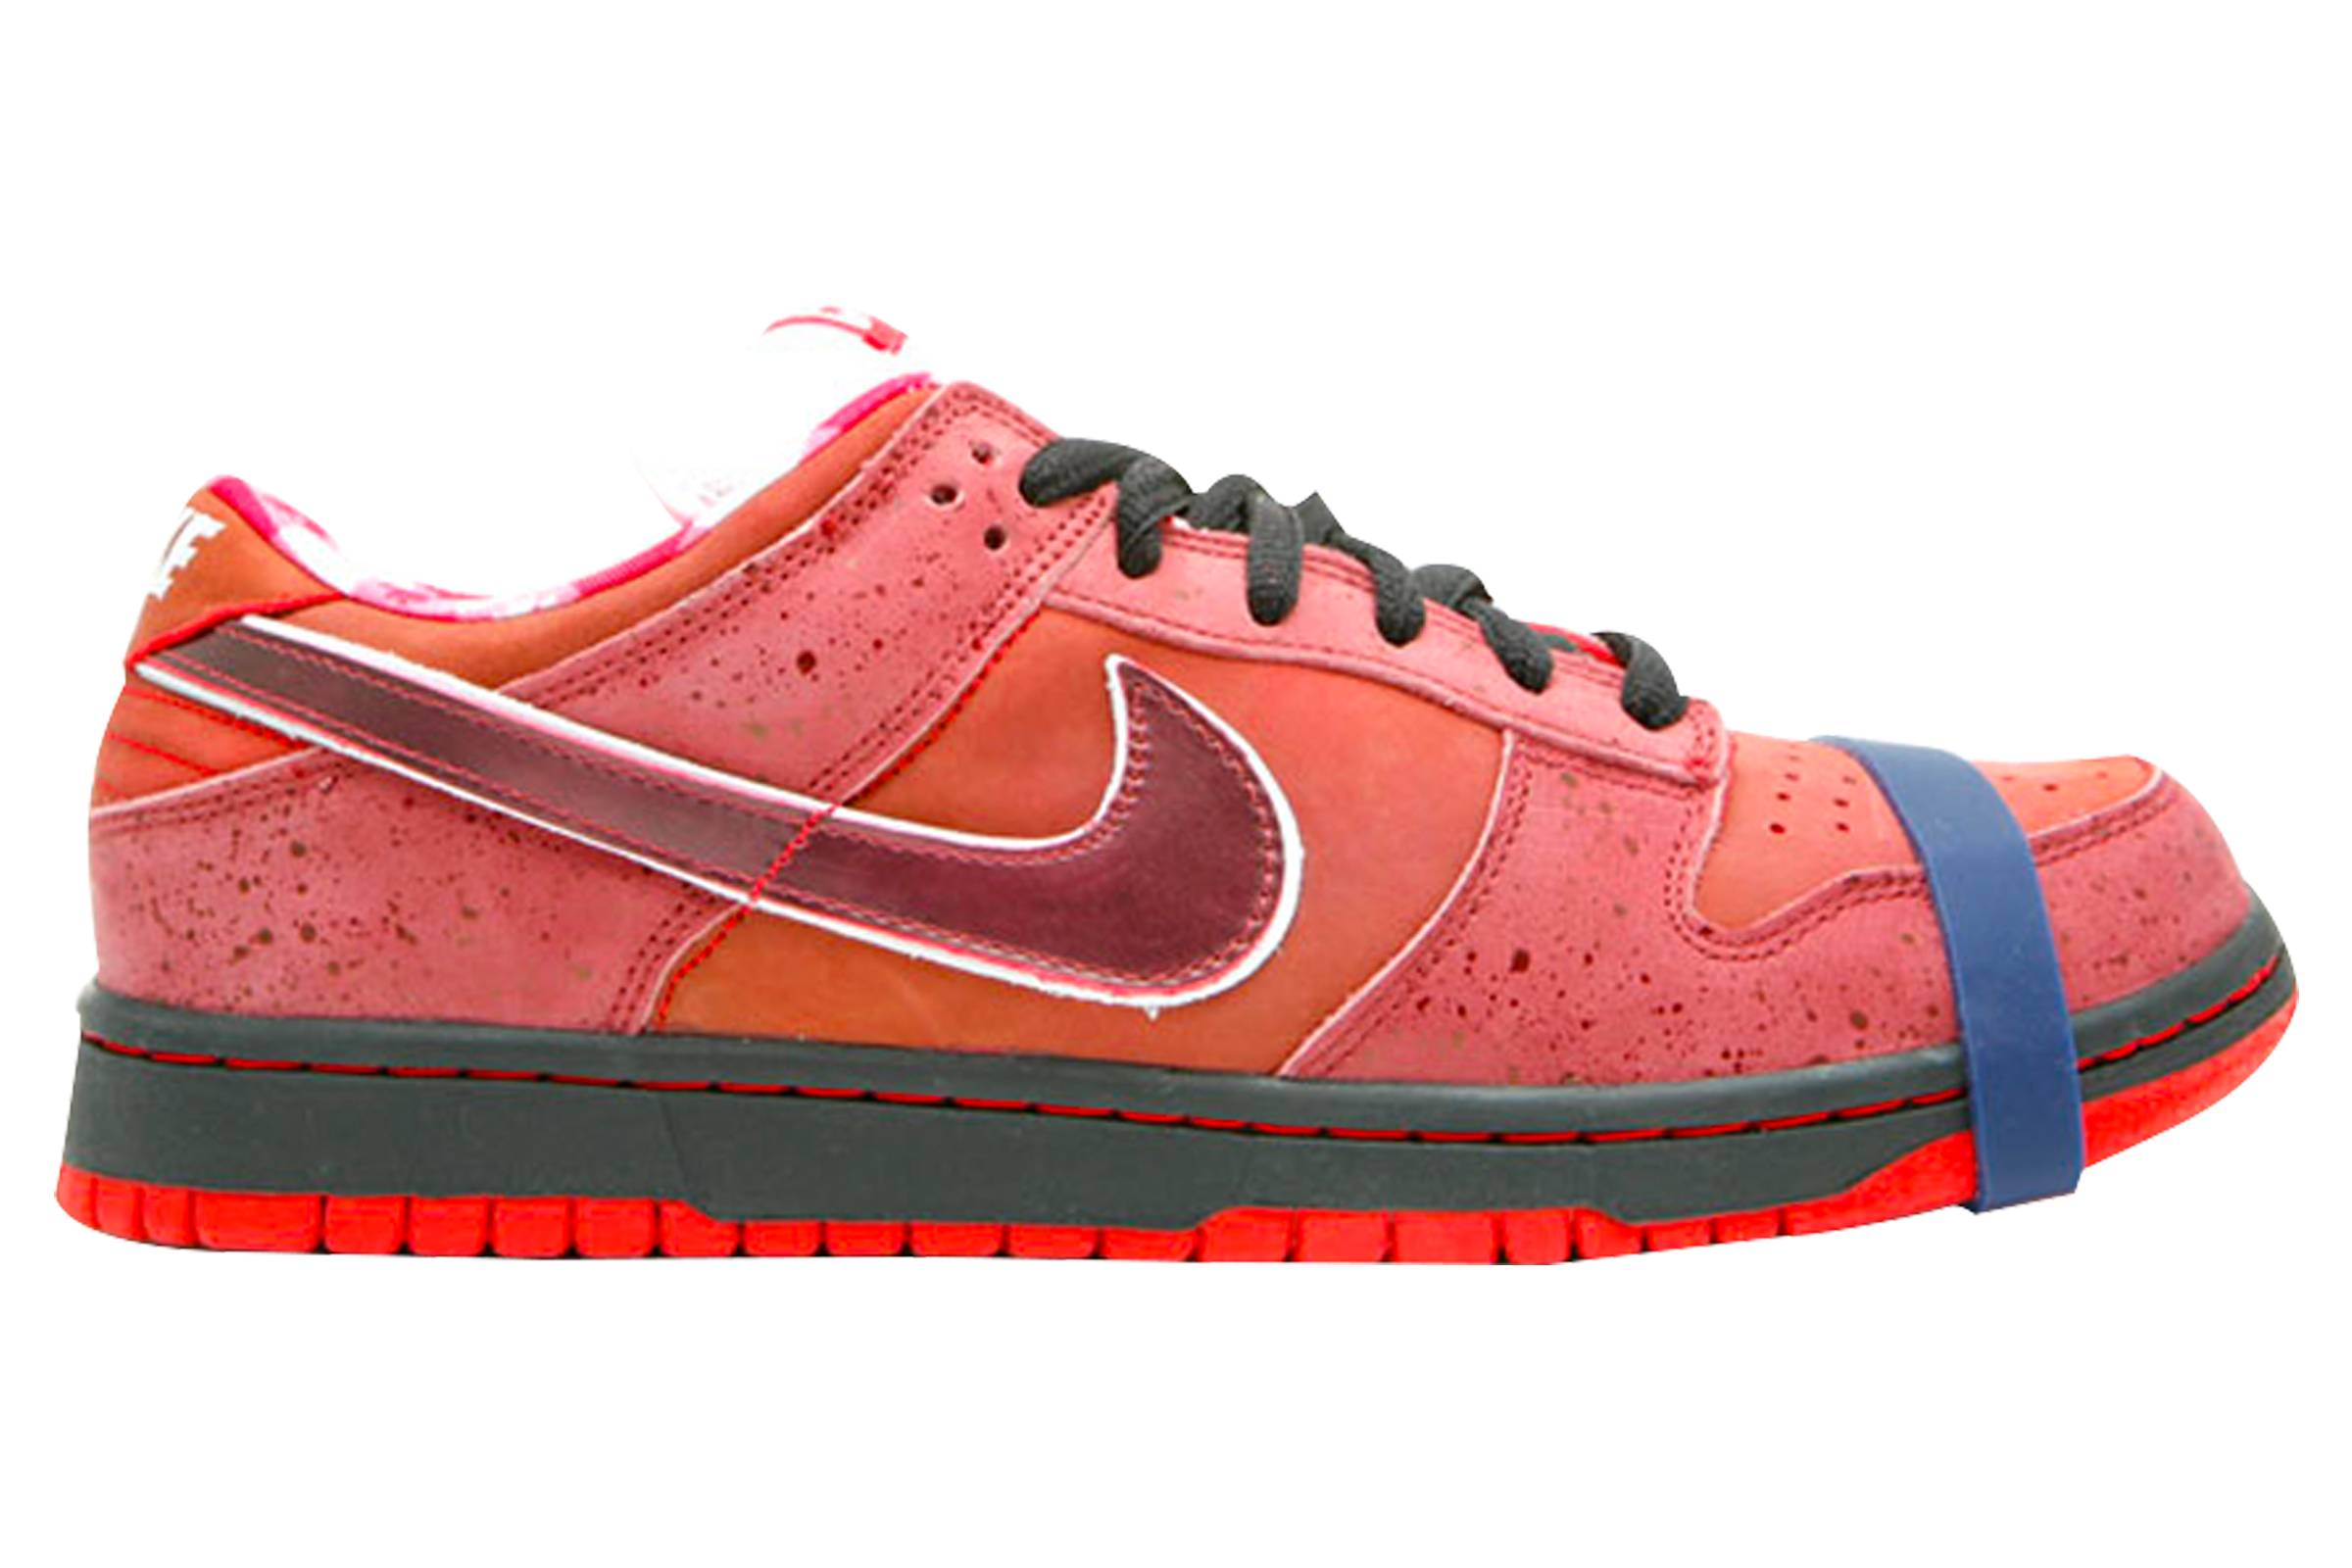 super popular 6c951 3d2c6 Dunk Low Premium SB Lobster (2008)